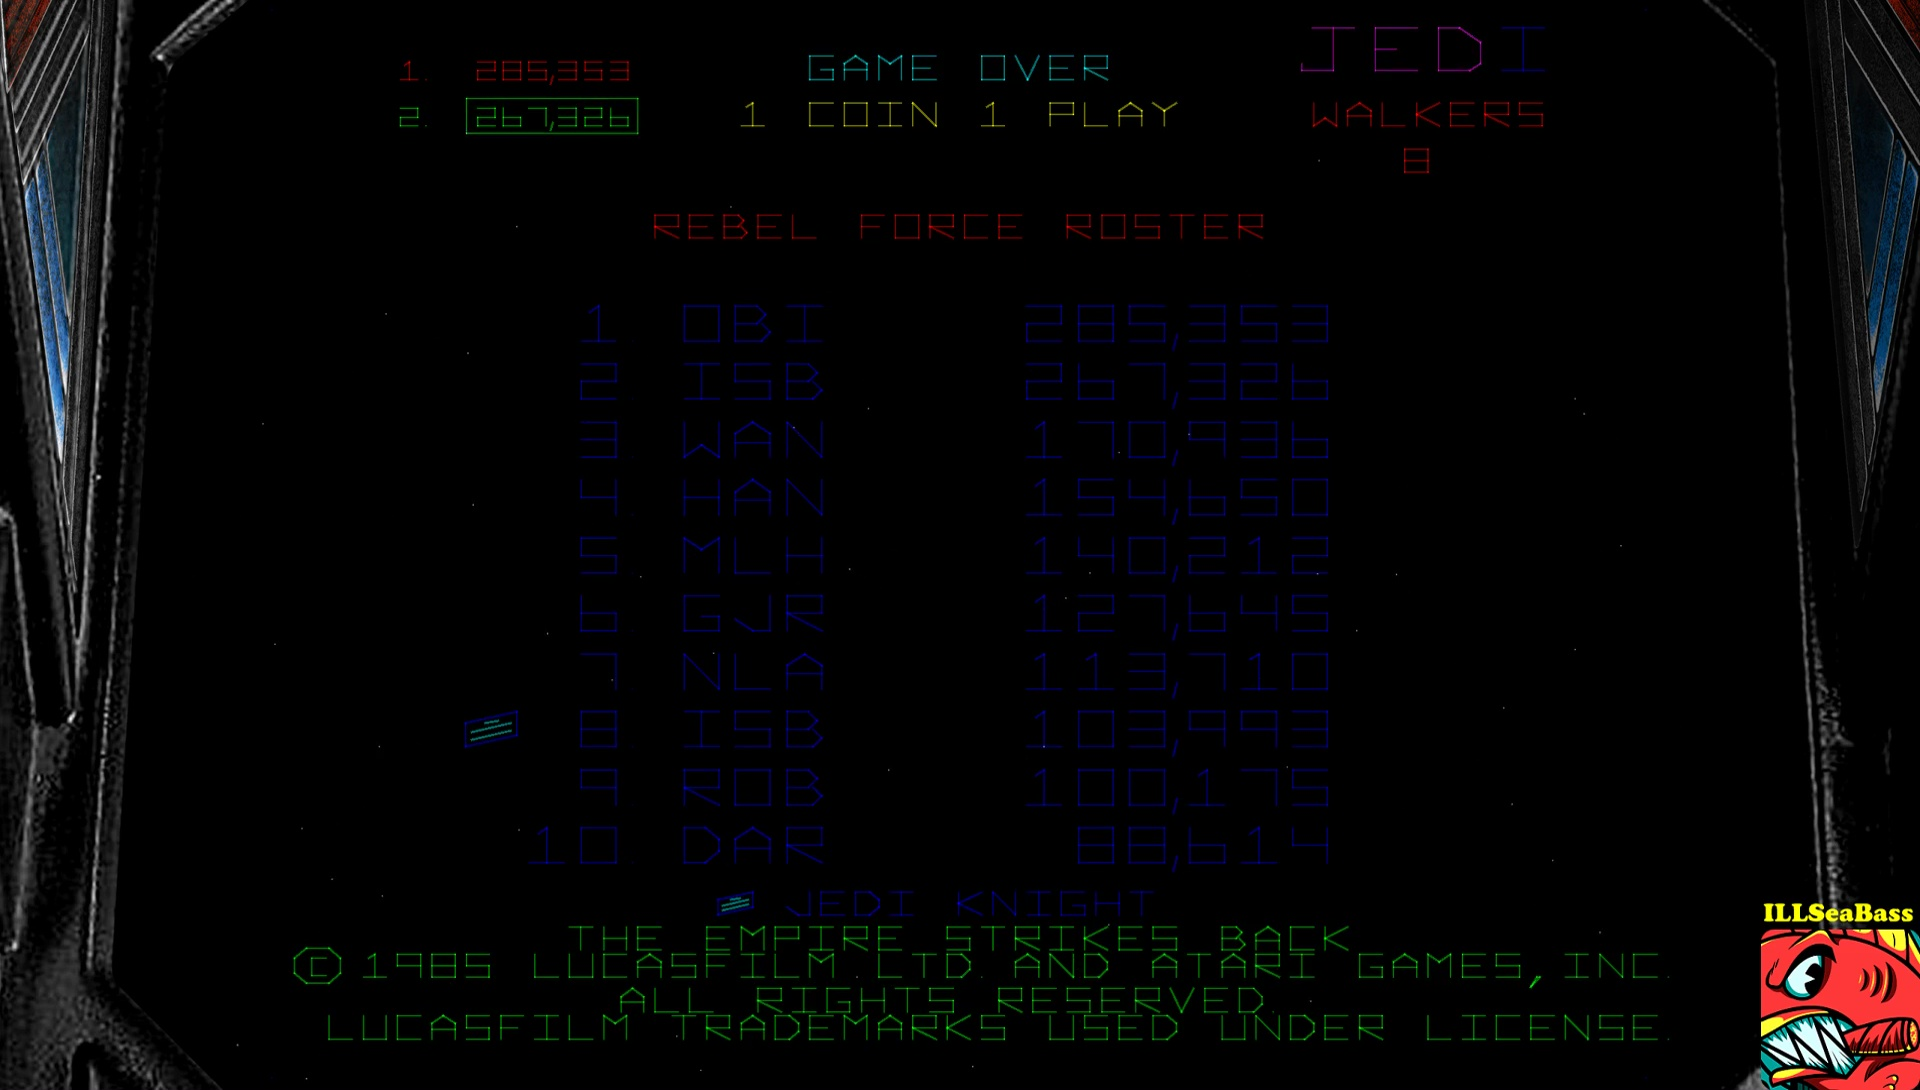 ILLSeaBass: Star Wars: The Empire Strikes Back (Arcade Emulated / M.A.M.E.) 267,326 points on 2017-04-16 12:33:28